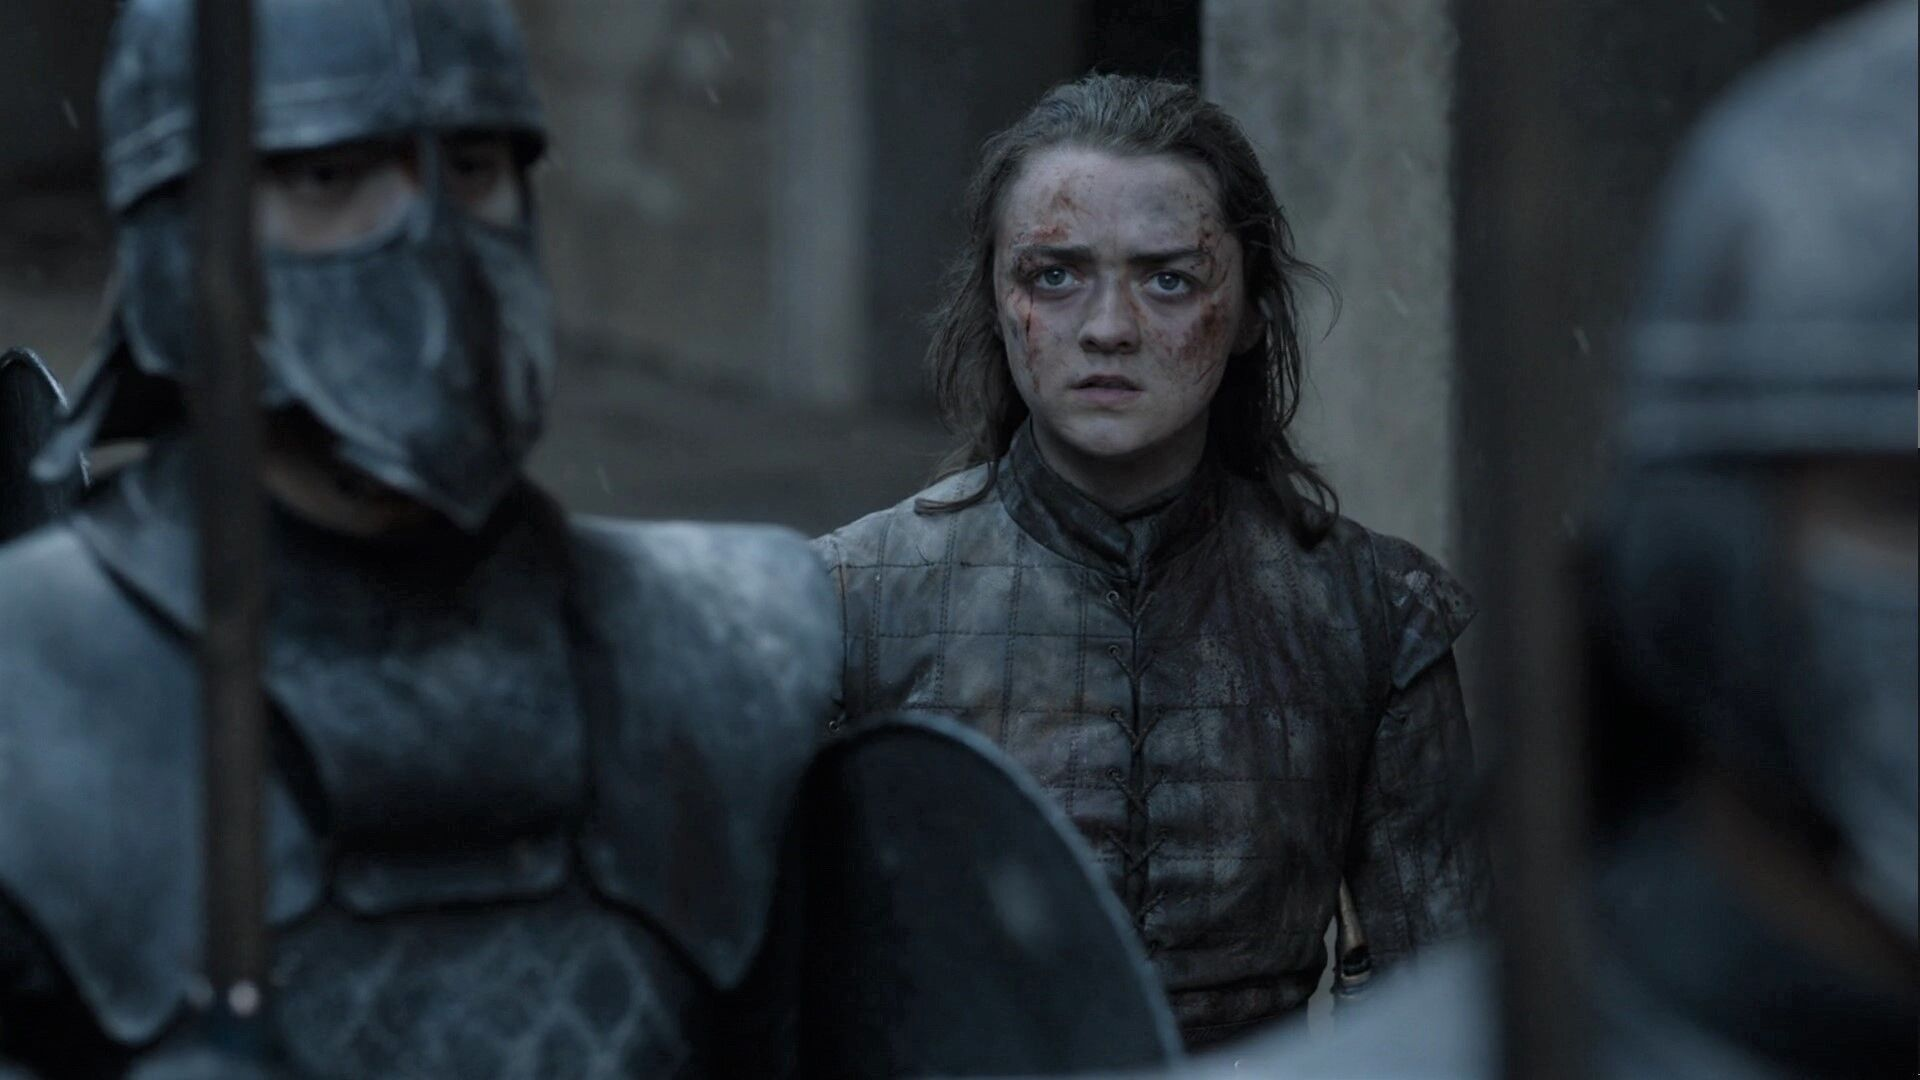 Four predictions for the Game of Thrones Episode series finale